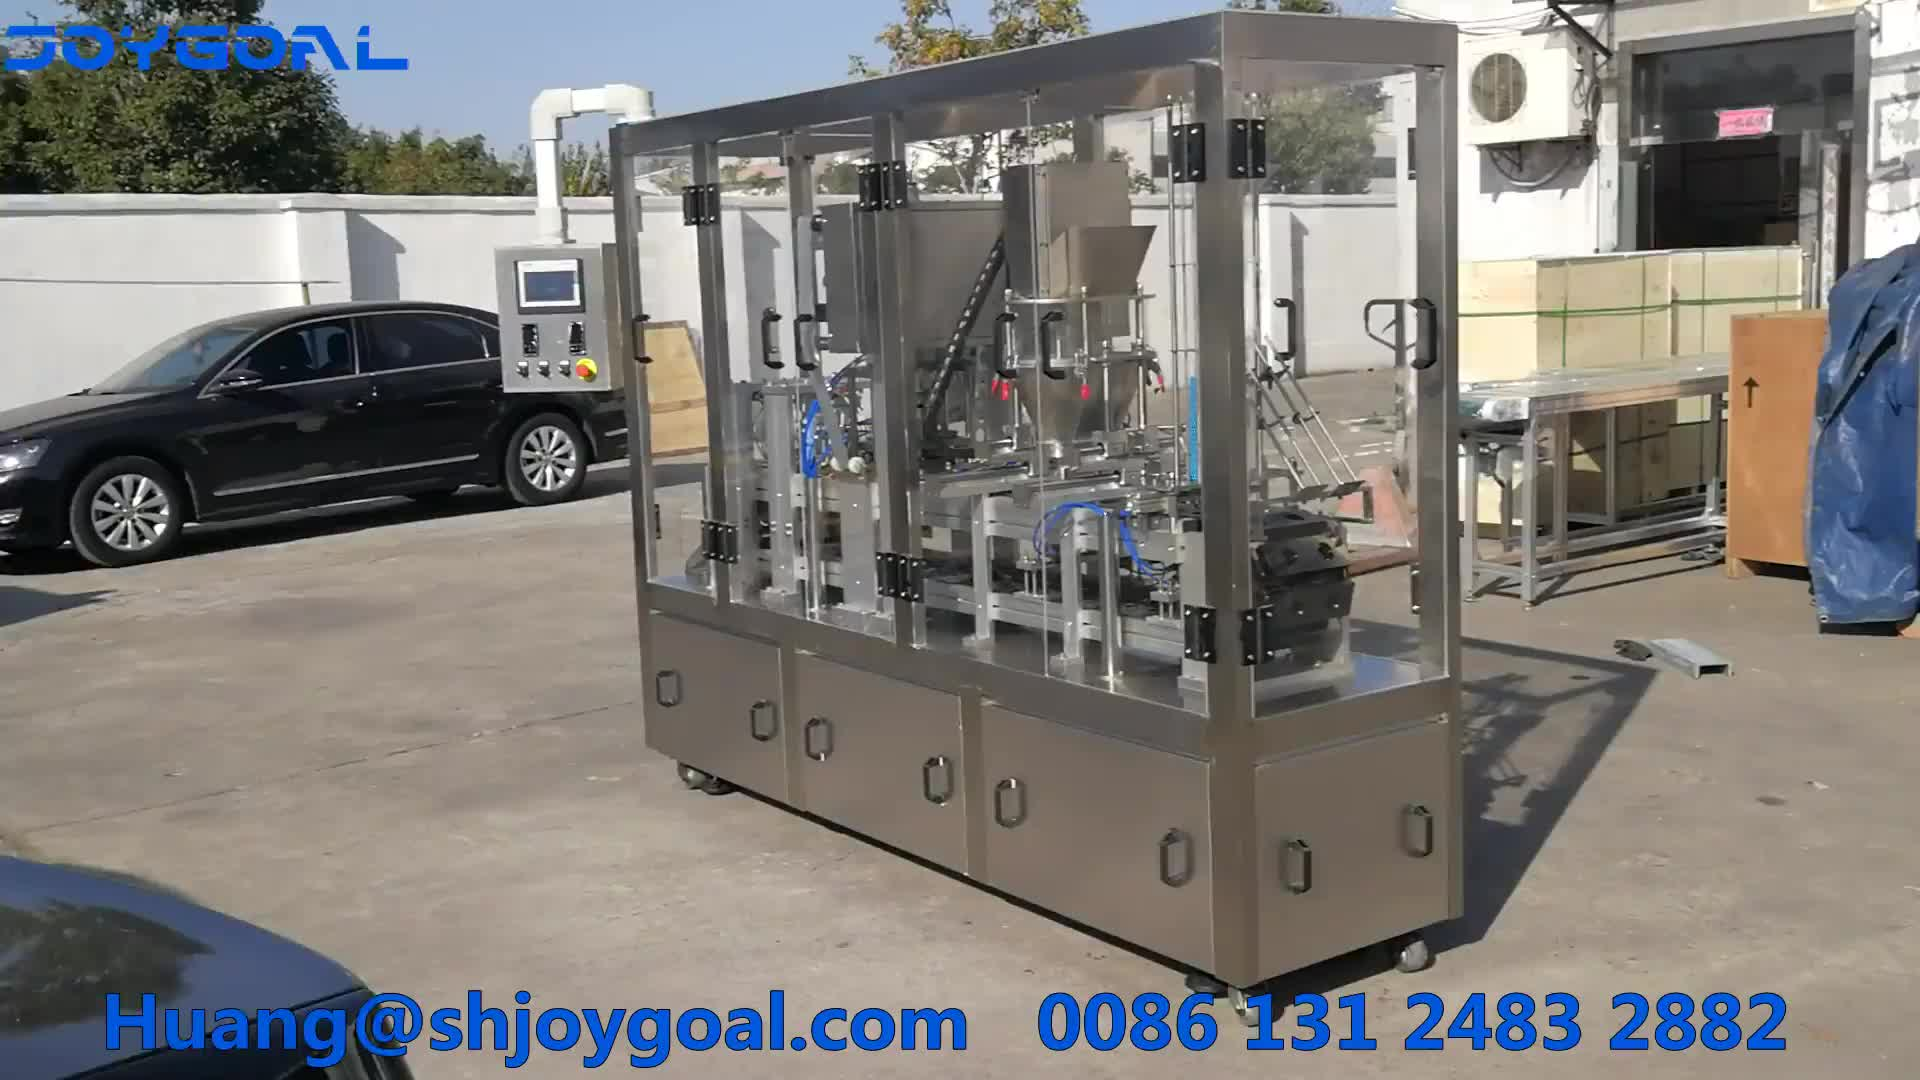 Nespresso pod making coffee capsule filling and sealing machine with nitrogen flushing [ Roll film, punch cutting ] manufacturer